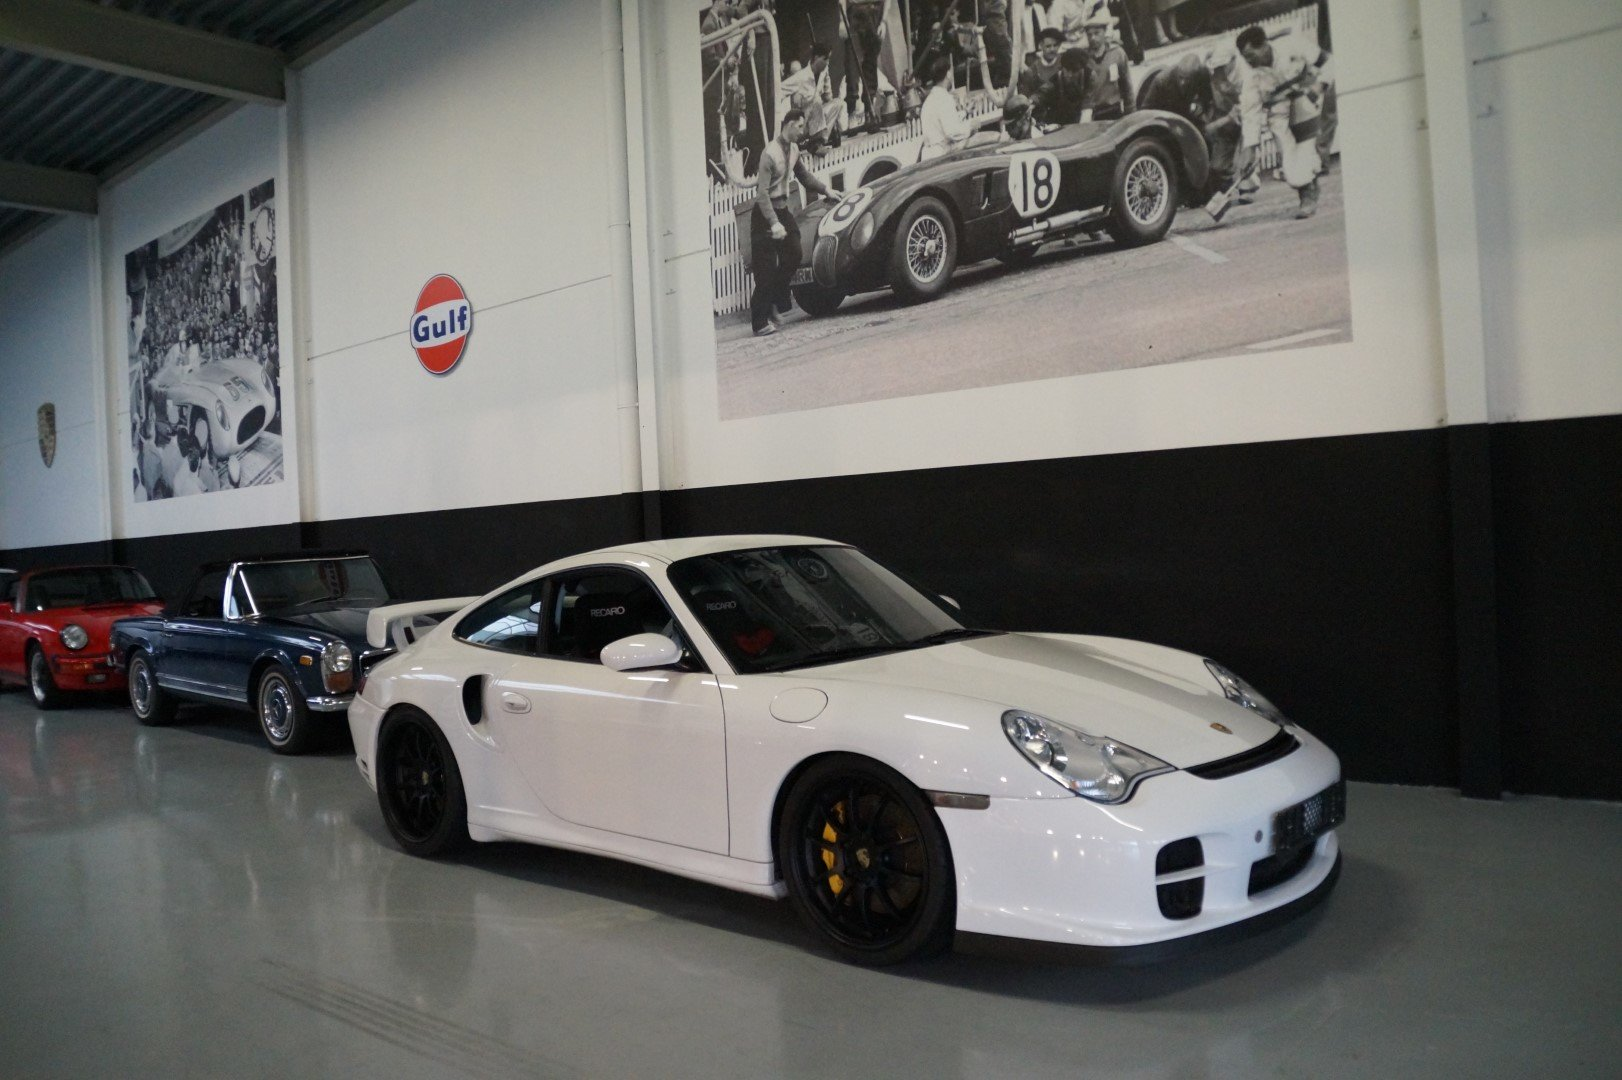 PORSCHE 996 GT2 One of a kind (2002) For Sale (picture 1 of 6)